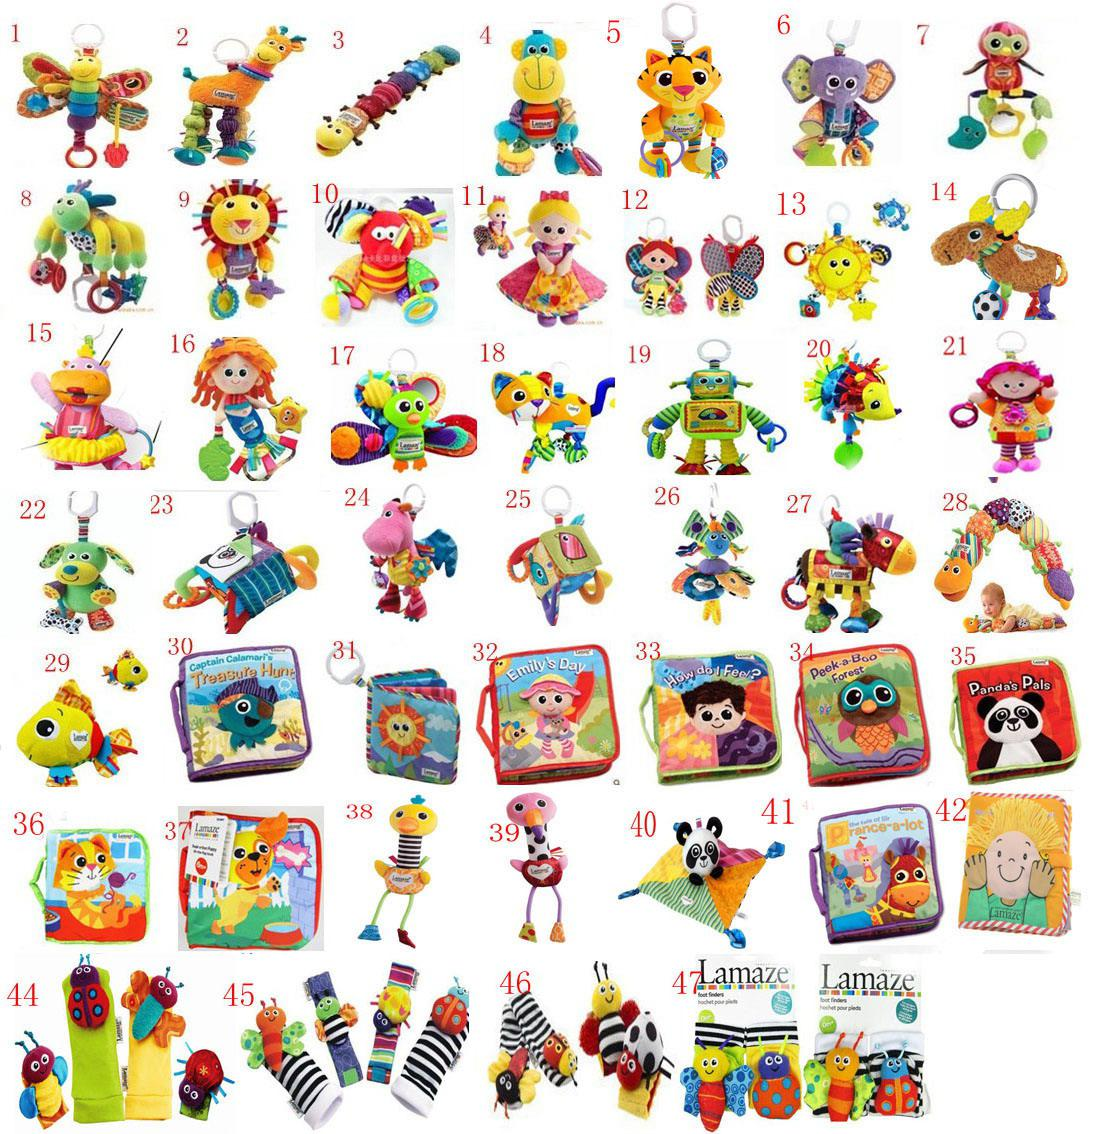 Best crib toys your baby - Lamaze Toy Crib Toys With Rattle Teether Infant Early Development Toy Stroller Music Baby Doll Toy Lamaze Cloth Book Books Online With 6 51 Piece On